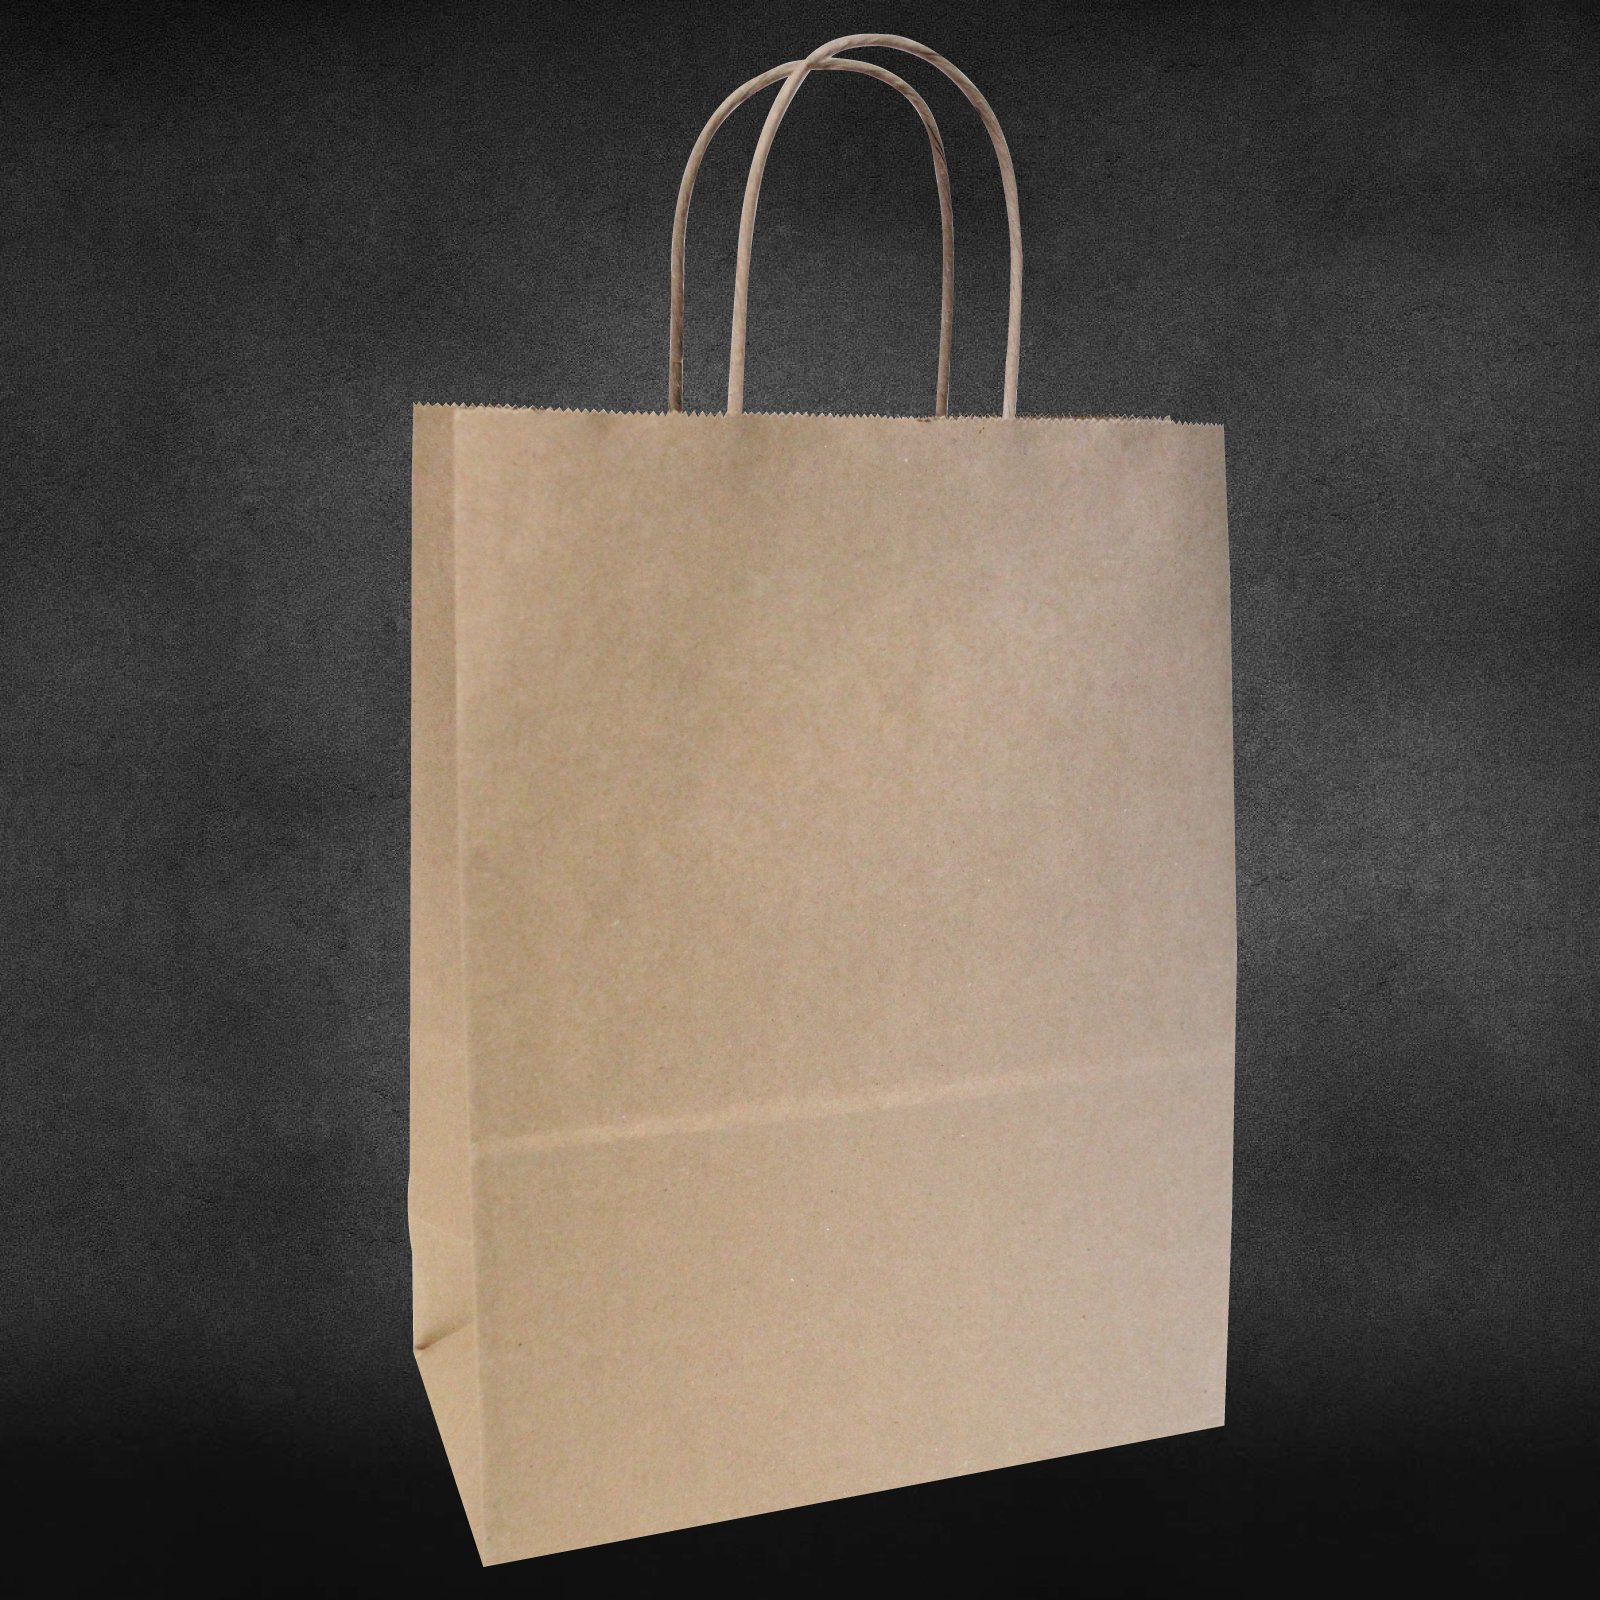 10''x5''x13'' - 100 Pcs - Bagsource Brown Kraft Paper Bags,95% POST CONSUMER MATERIALS & FSC CERTIFIED by BagSource